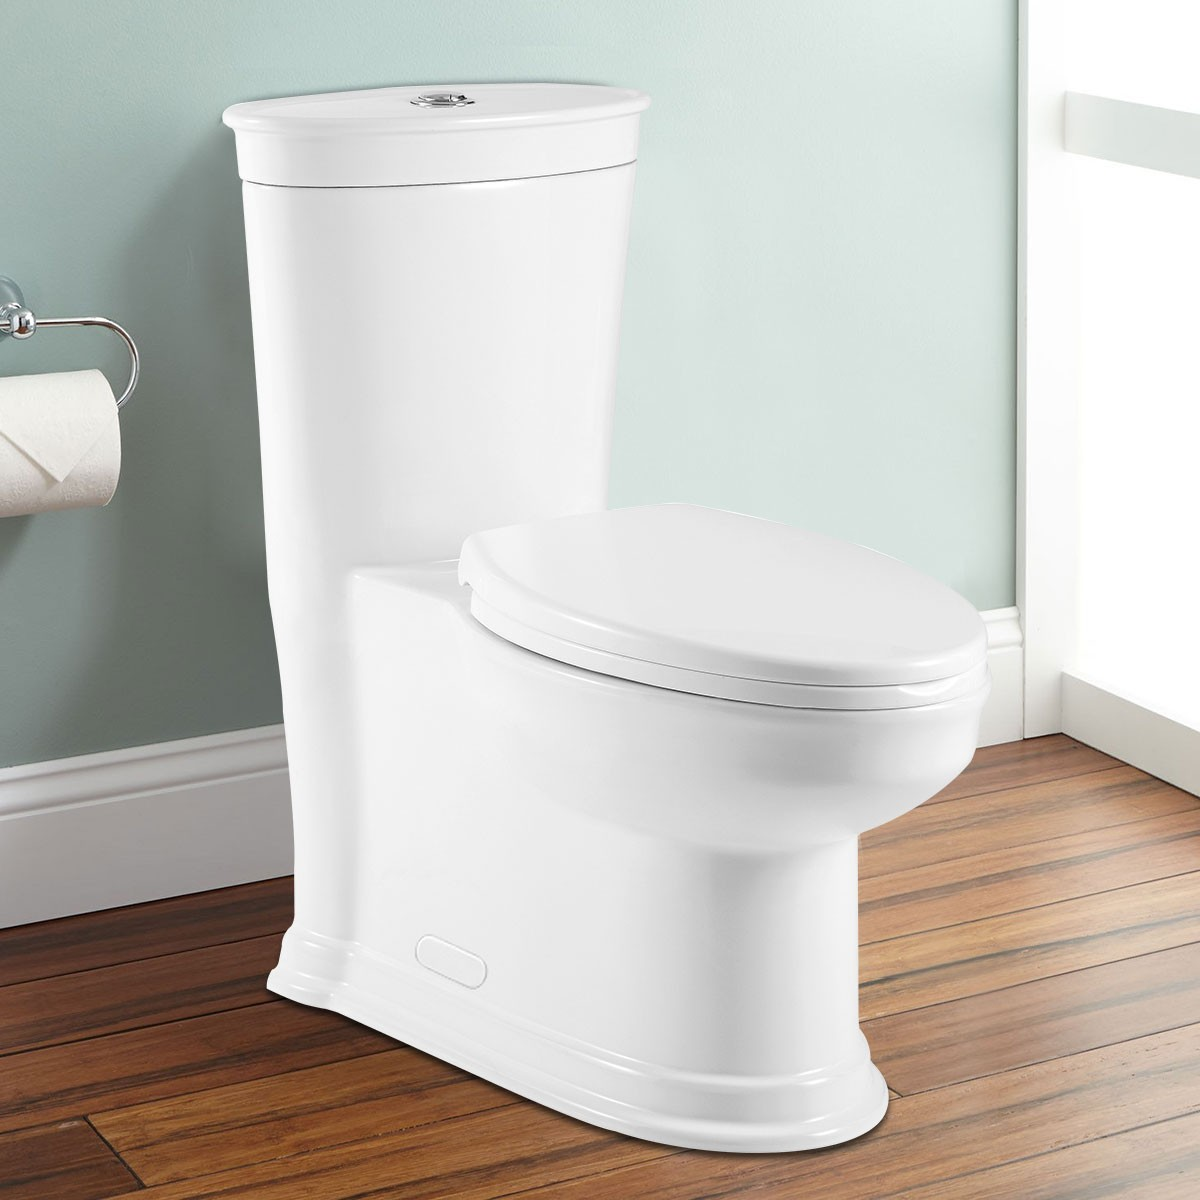 Dual Flush High Efficiency Water Saving One-piece Toilet (DK-ZBQ-12235)